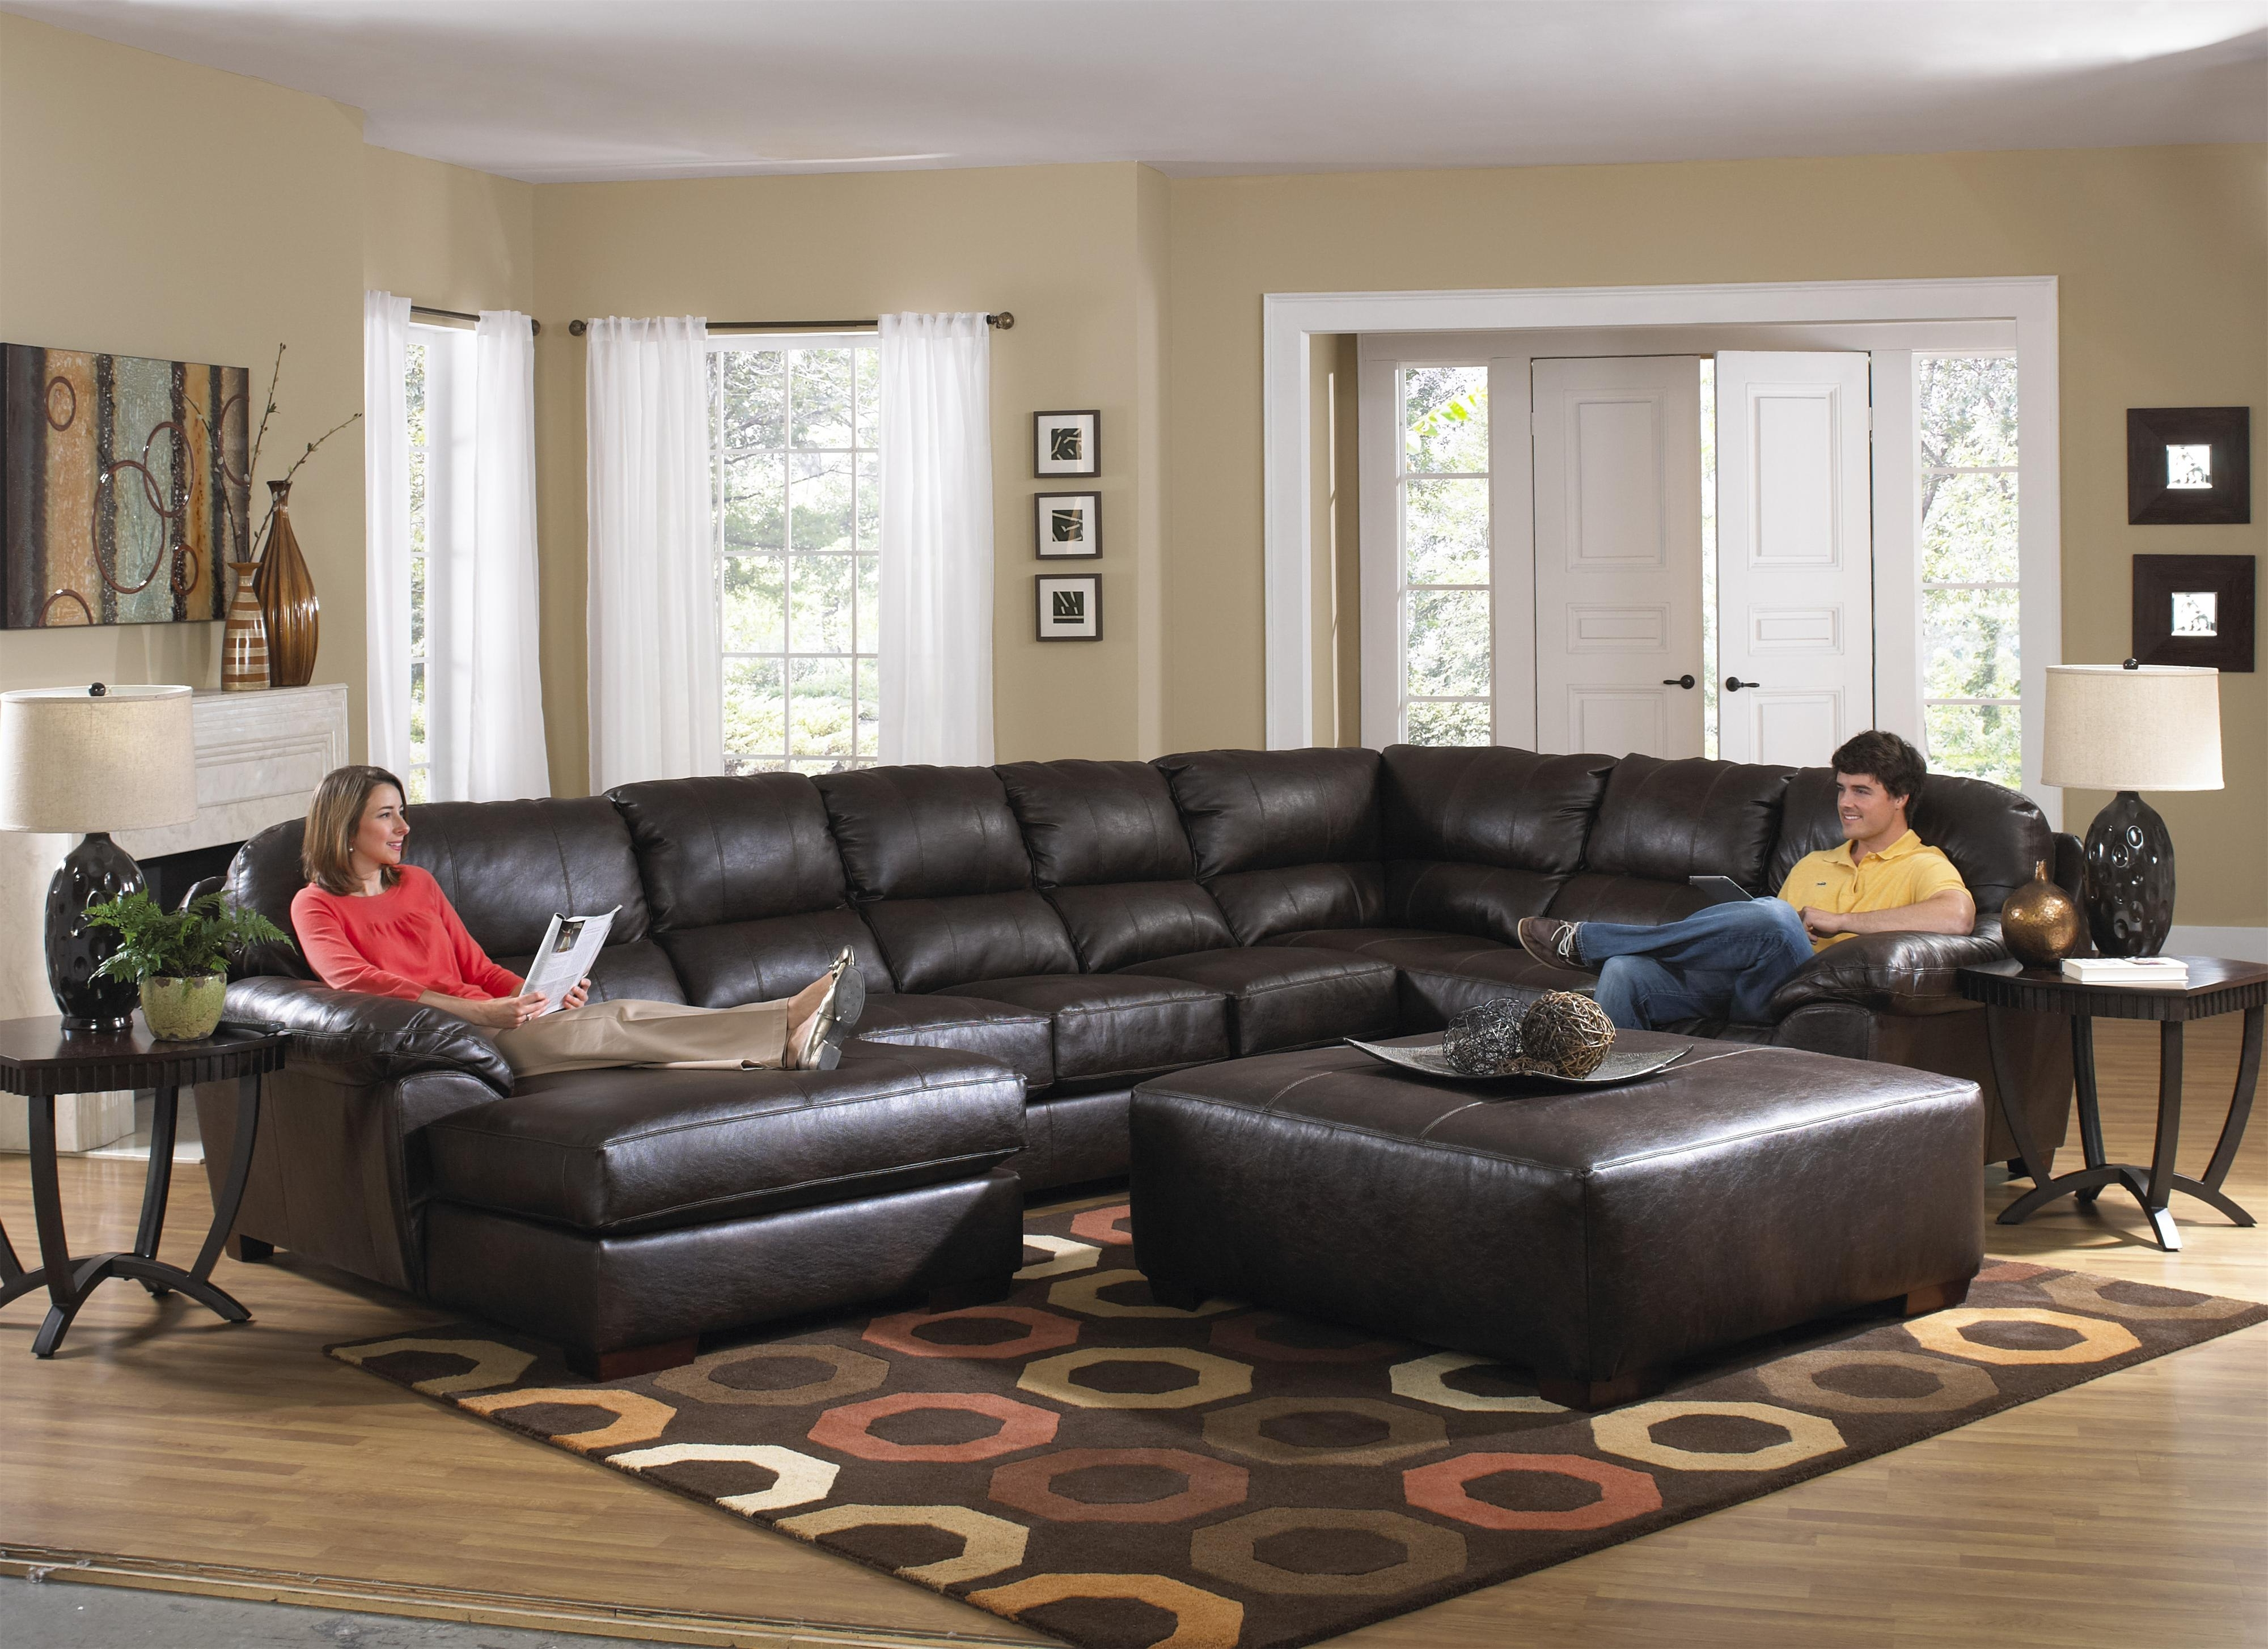 Oversized Couches Ashley Furniture Extra Deep Couch Oversized Throughout 2018 Long Sectional Sofas With Chaise (View 15 of 20)